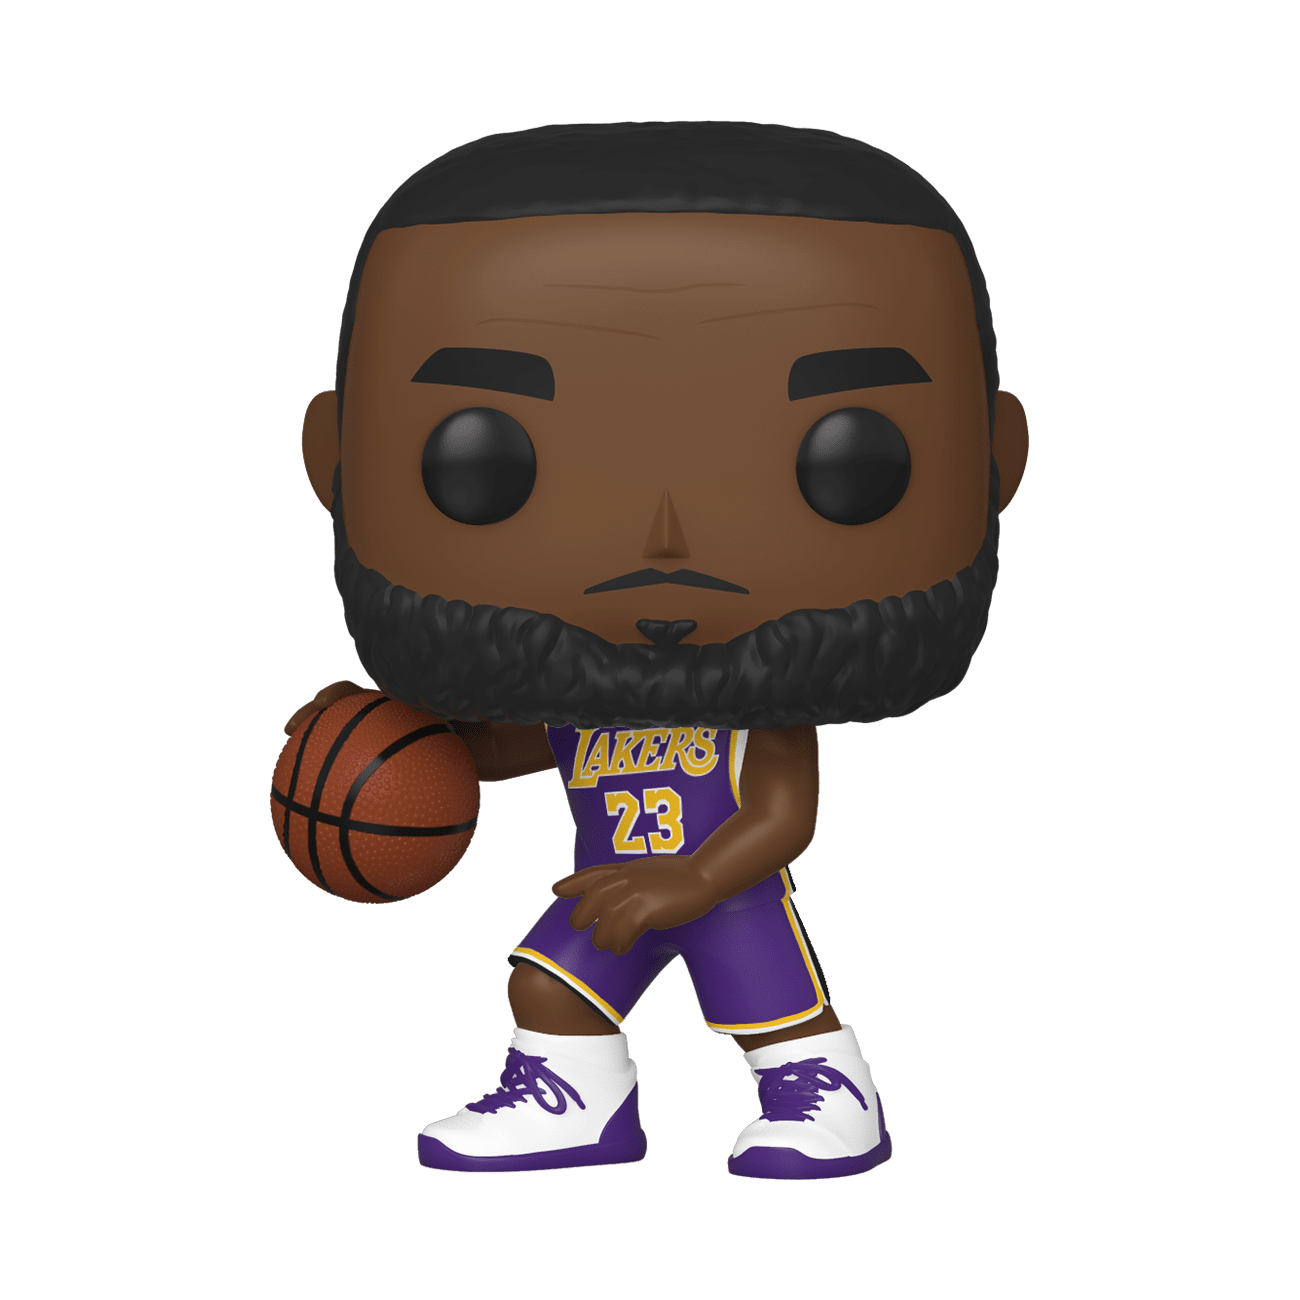 1436_3266_8d750cd5601da33_46549_NBA_Lebron_James_lakers_POP_GLAM-WEB-c5b8286ba34172ec736a644f757c9fd6.png